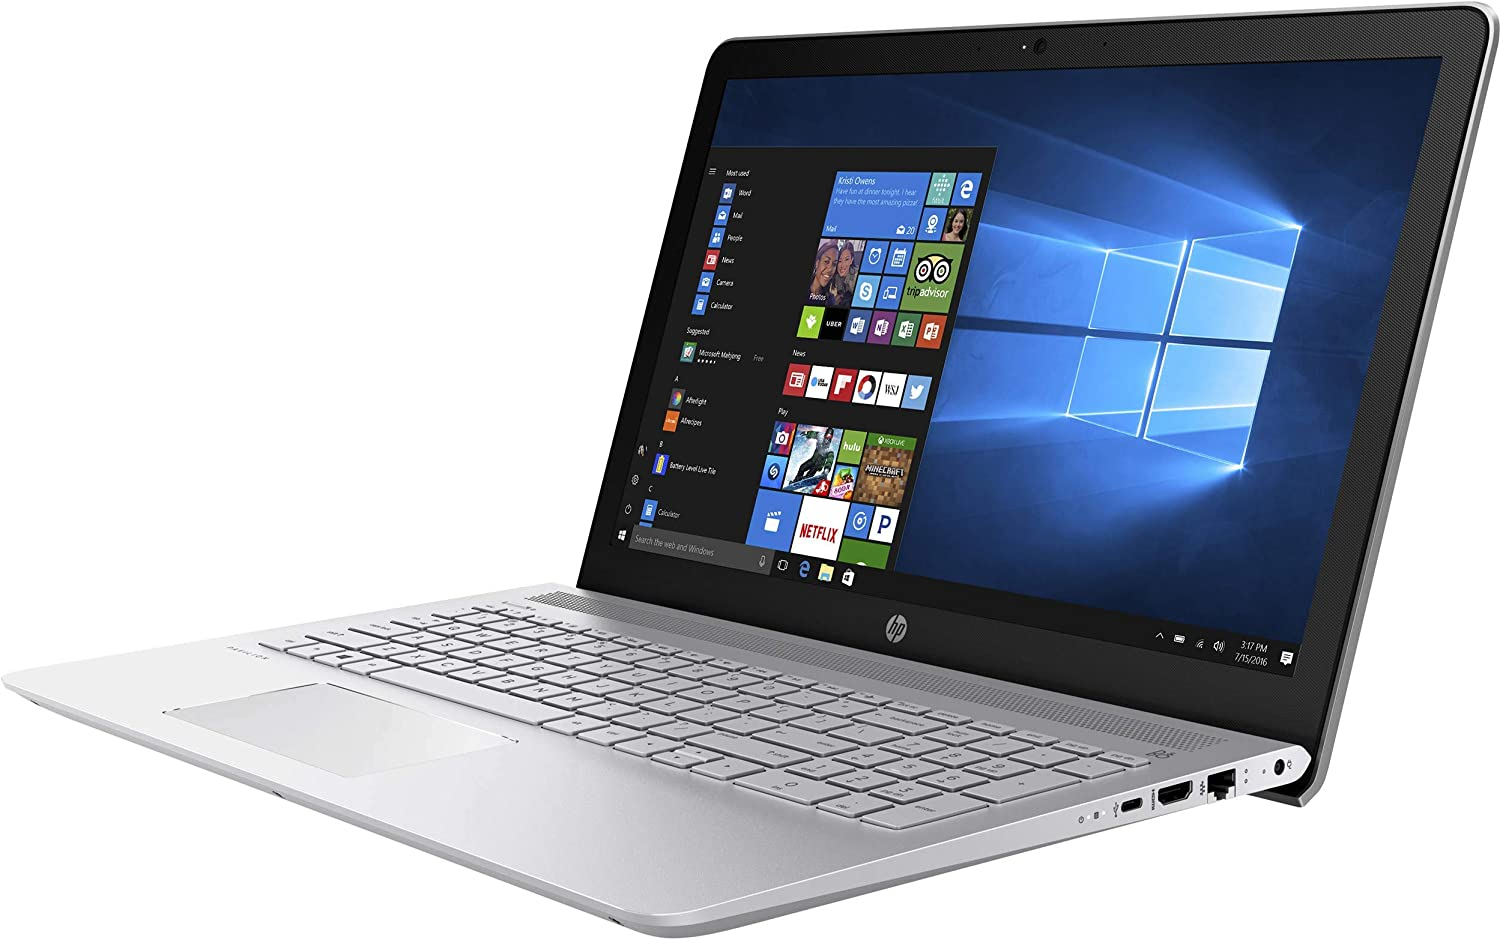 "HP Pavilion 15 15.6"" IPS Touchscreen Full HD (1920x1080) Business Laptop - 8th Gen Intel Quad-Core i5-8250U, 8GB DDR4, 1TB HDD, USB Type-C, FHD IR Webcam, WiFi AC, HDMI, Ethernet RJ-45, Windows 10"